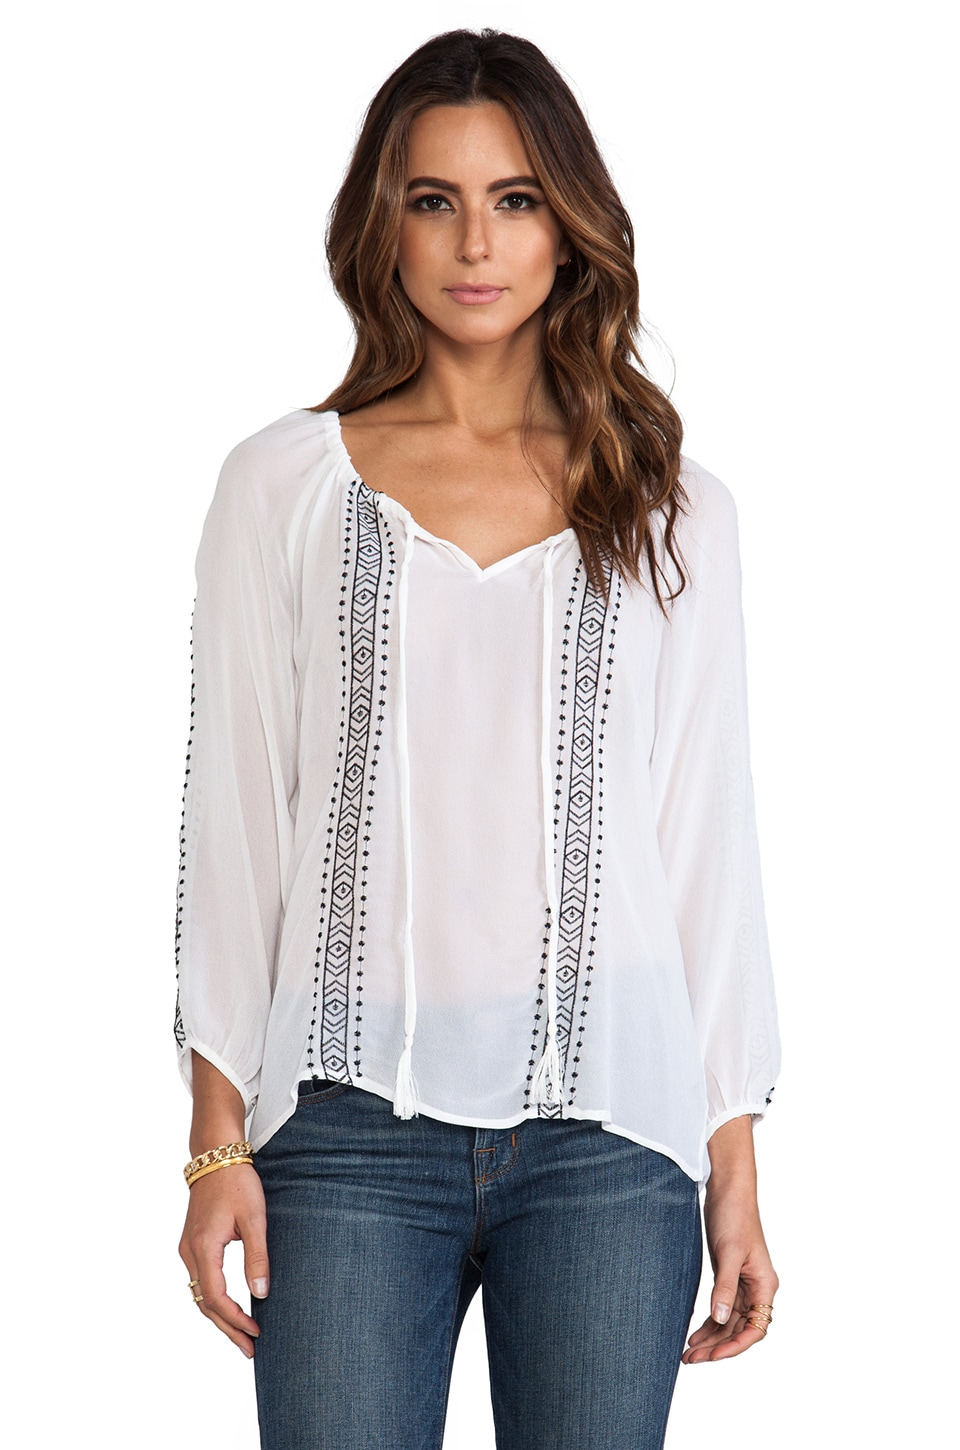 Sanctuary Embroidered Boho Blouse in White